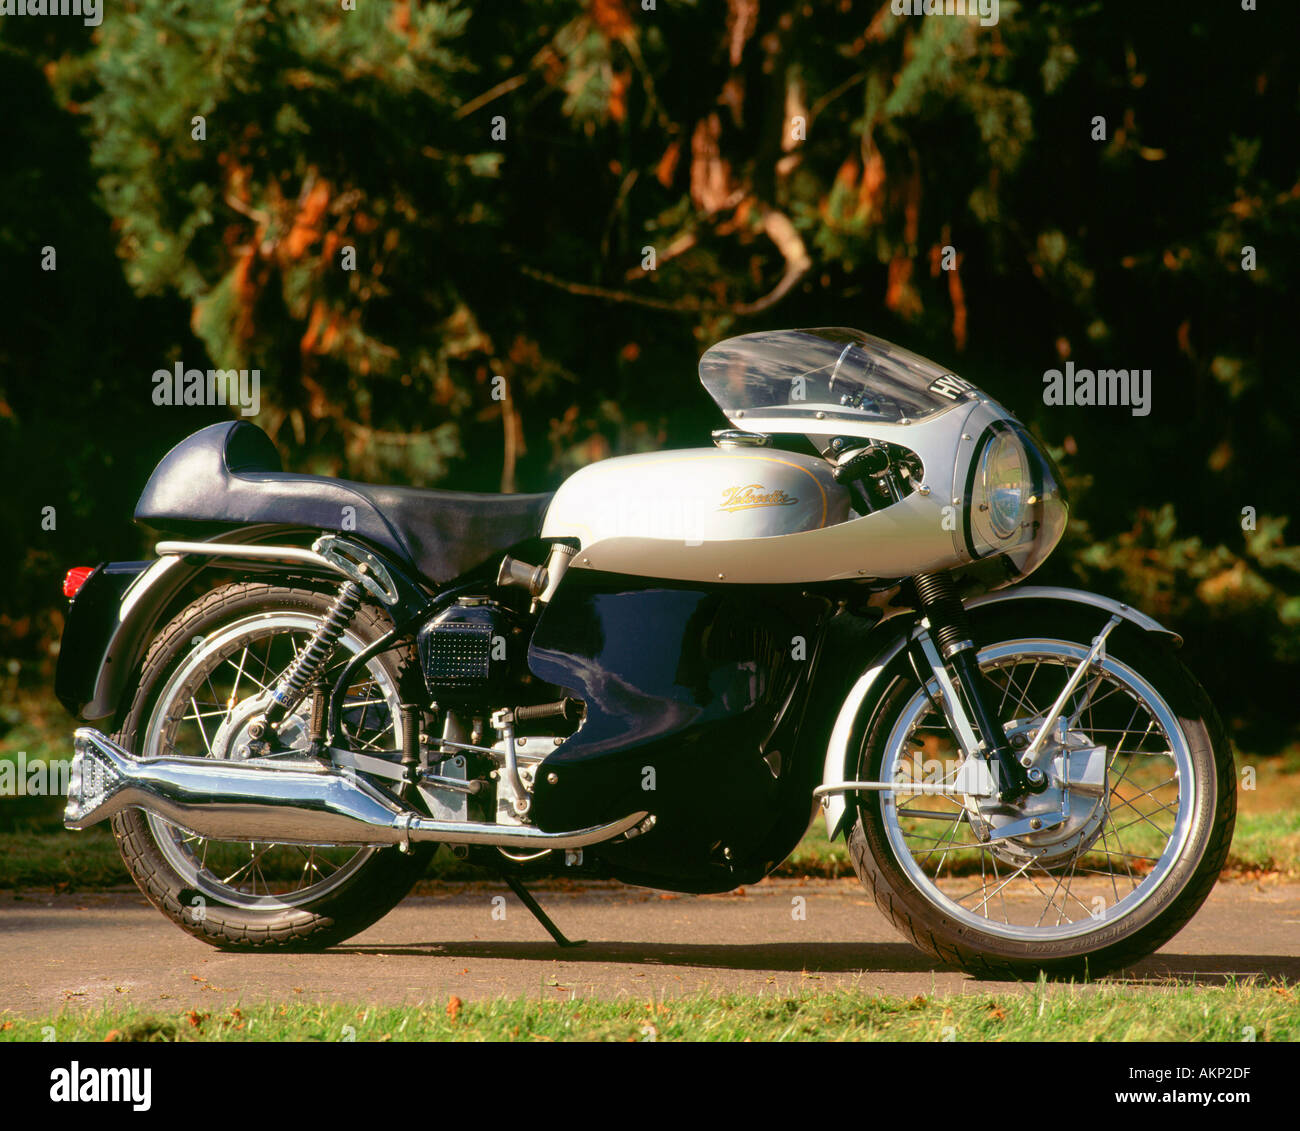 Profile Of Classic Bike Stock Photos Velocette1958leenginediagramjpg 1965 Velocette Thruxton Veeline Image